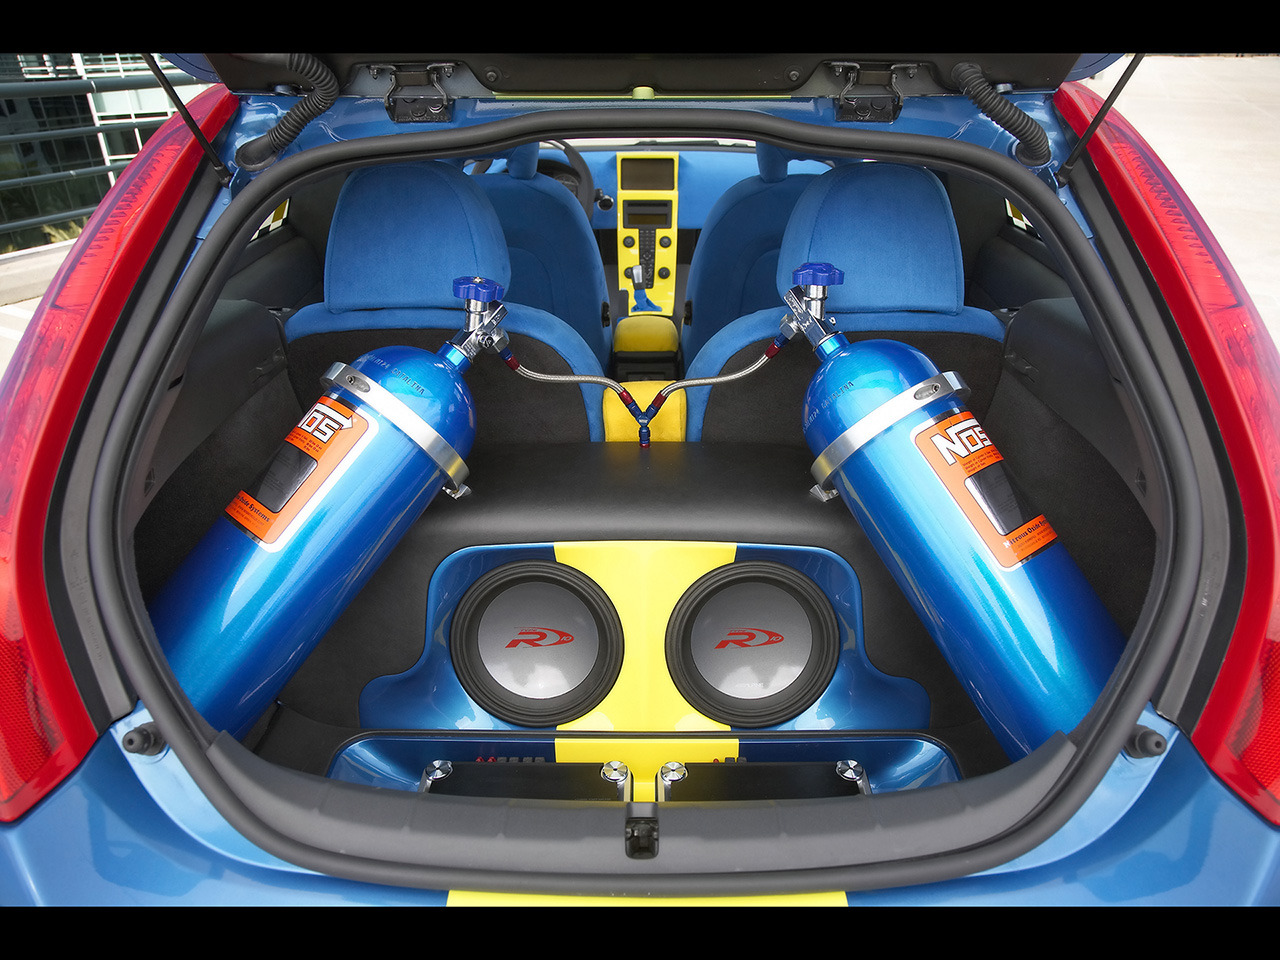 Nitrous Oxide Canisters in back of car